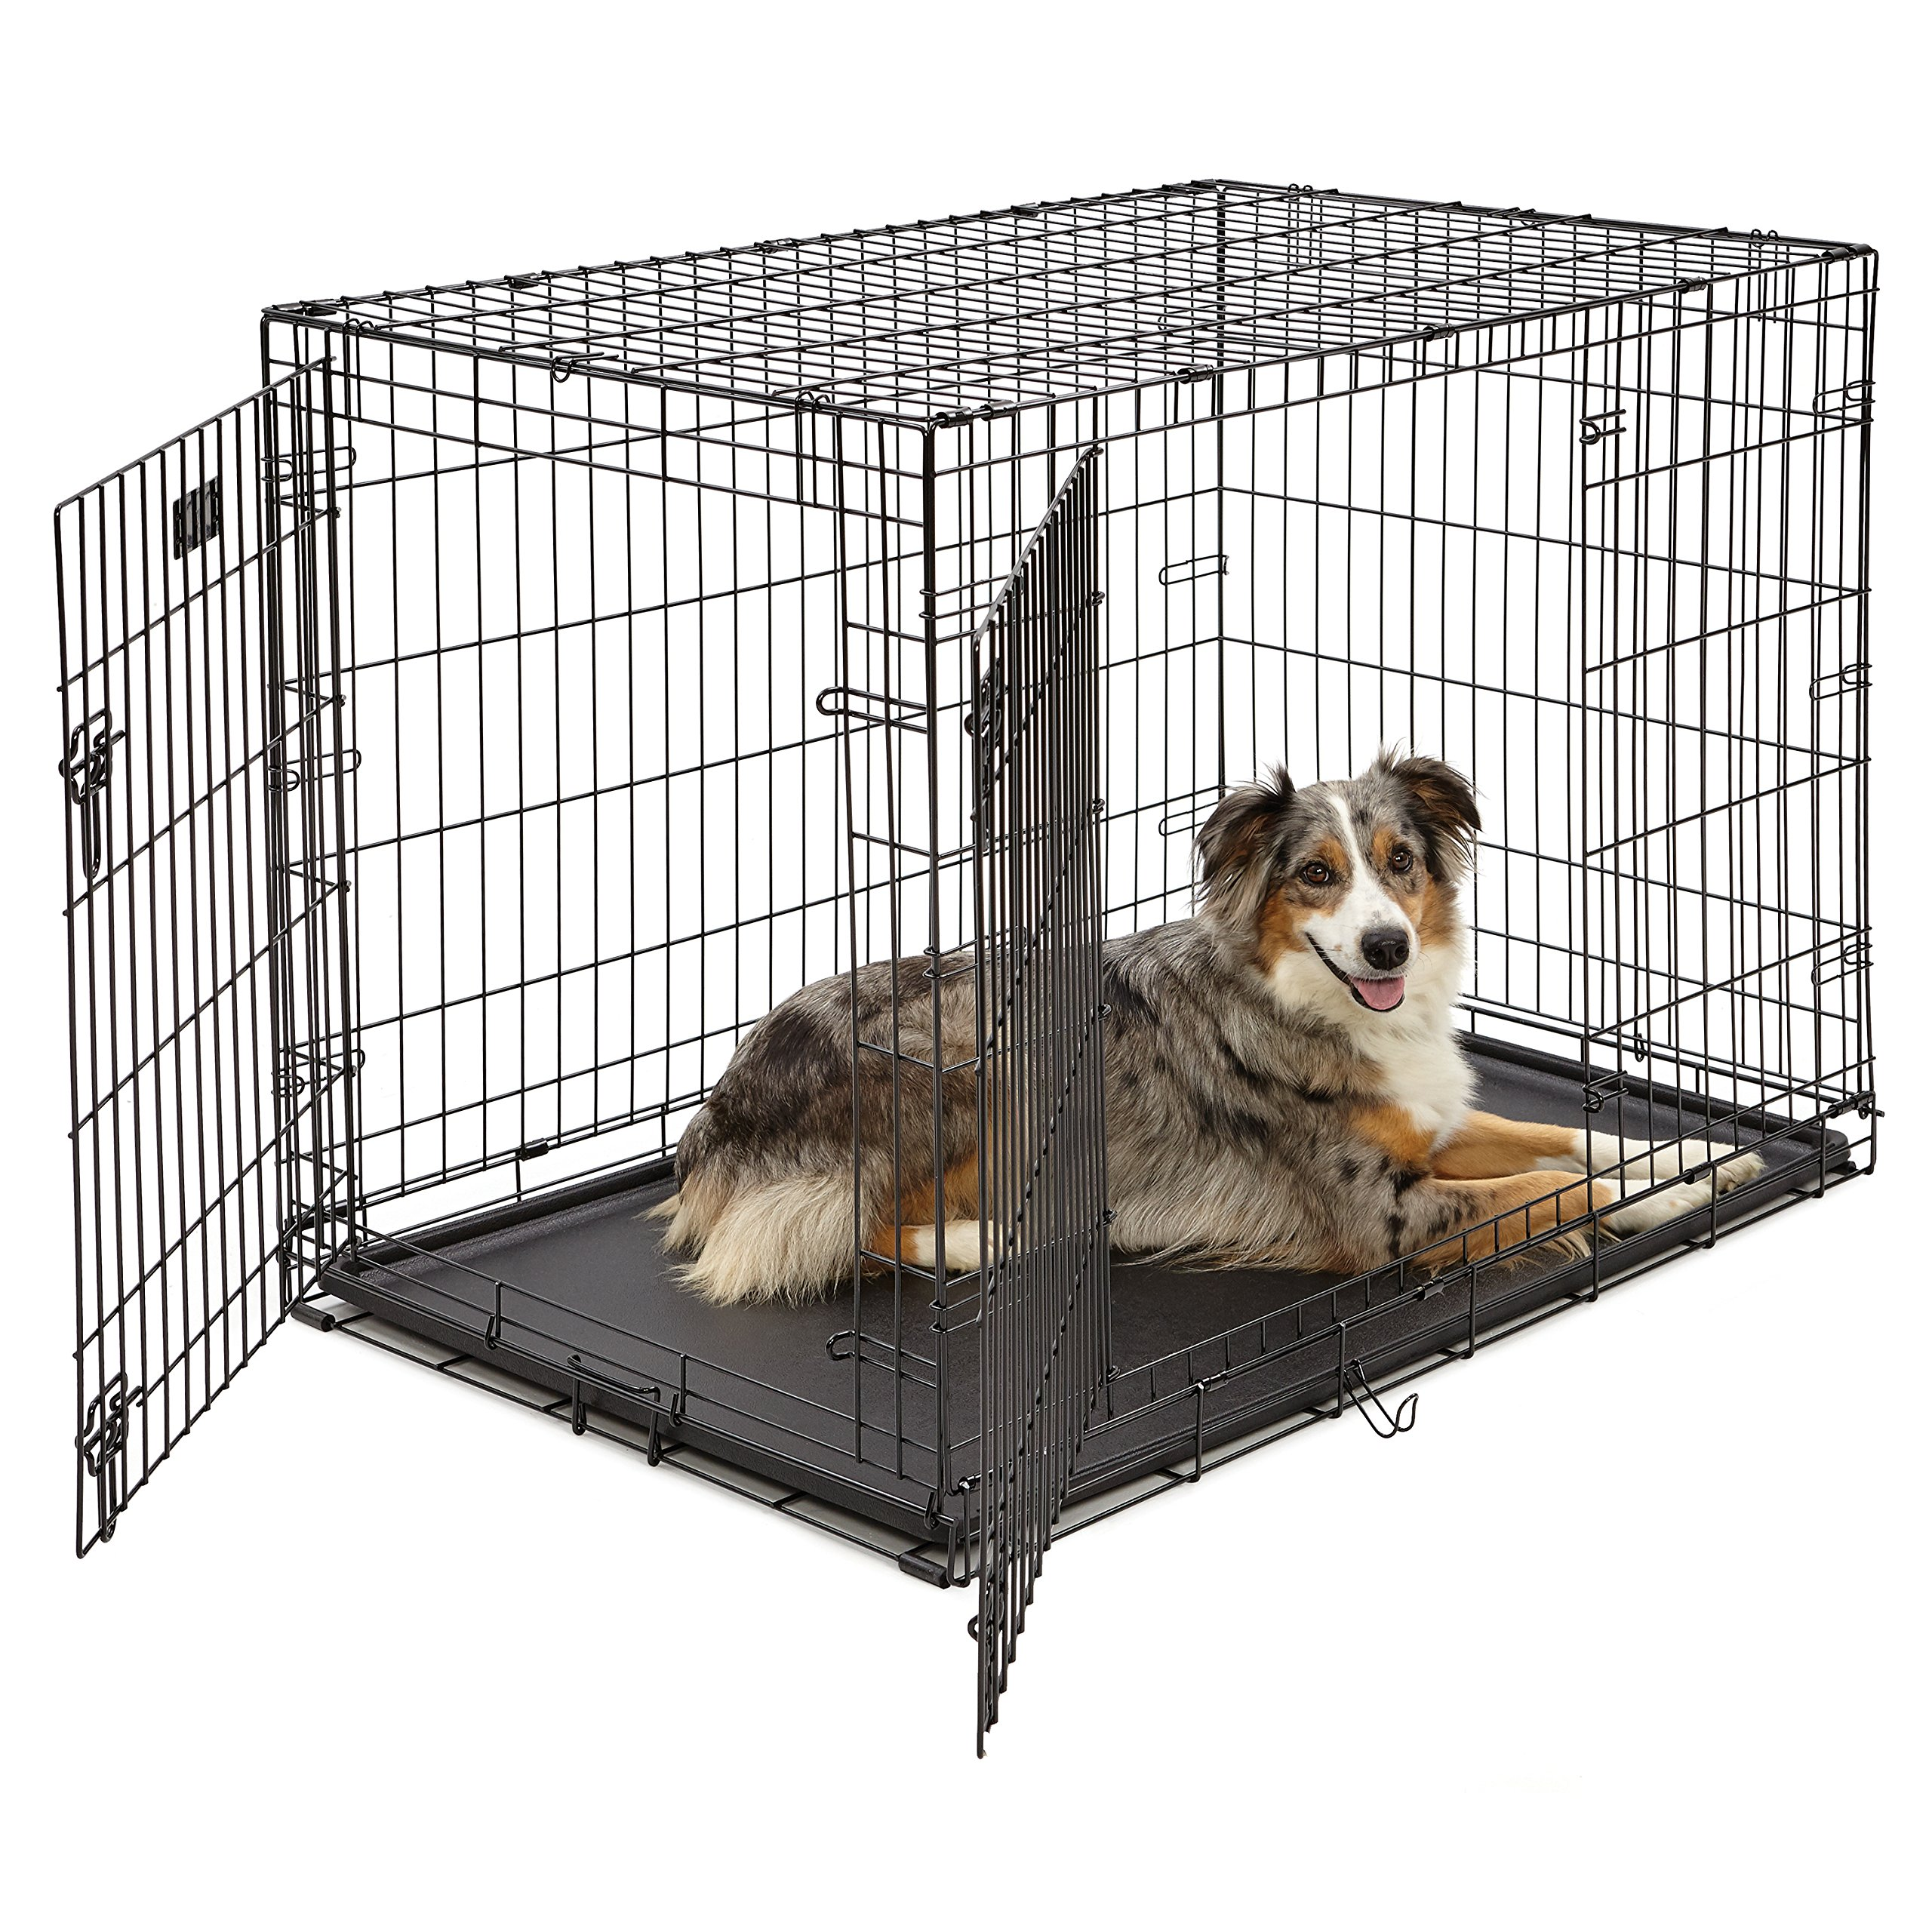 Large Dog Crate | MidWest iCrate Double Door Folding Metal Dog Crate|Large Dog, Black by MidWest Homes for Pets